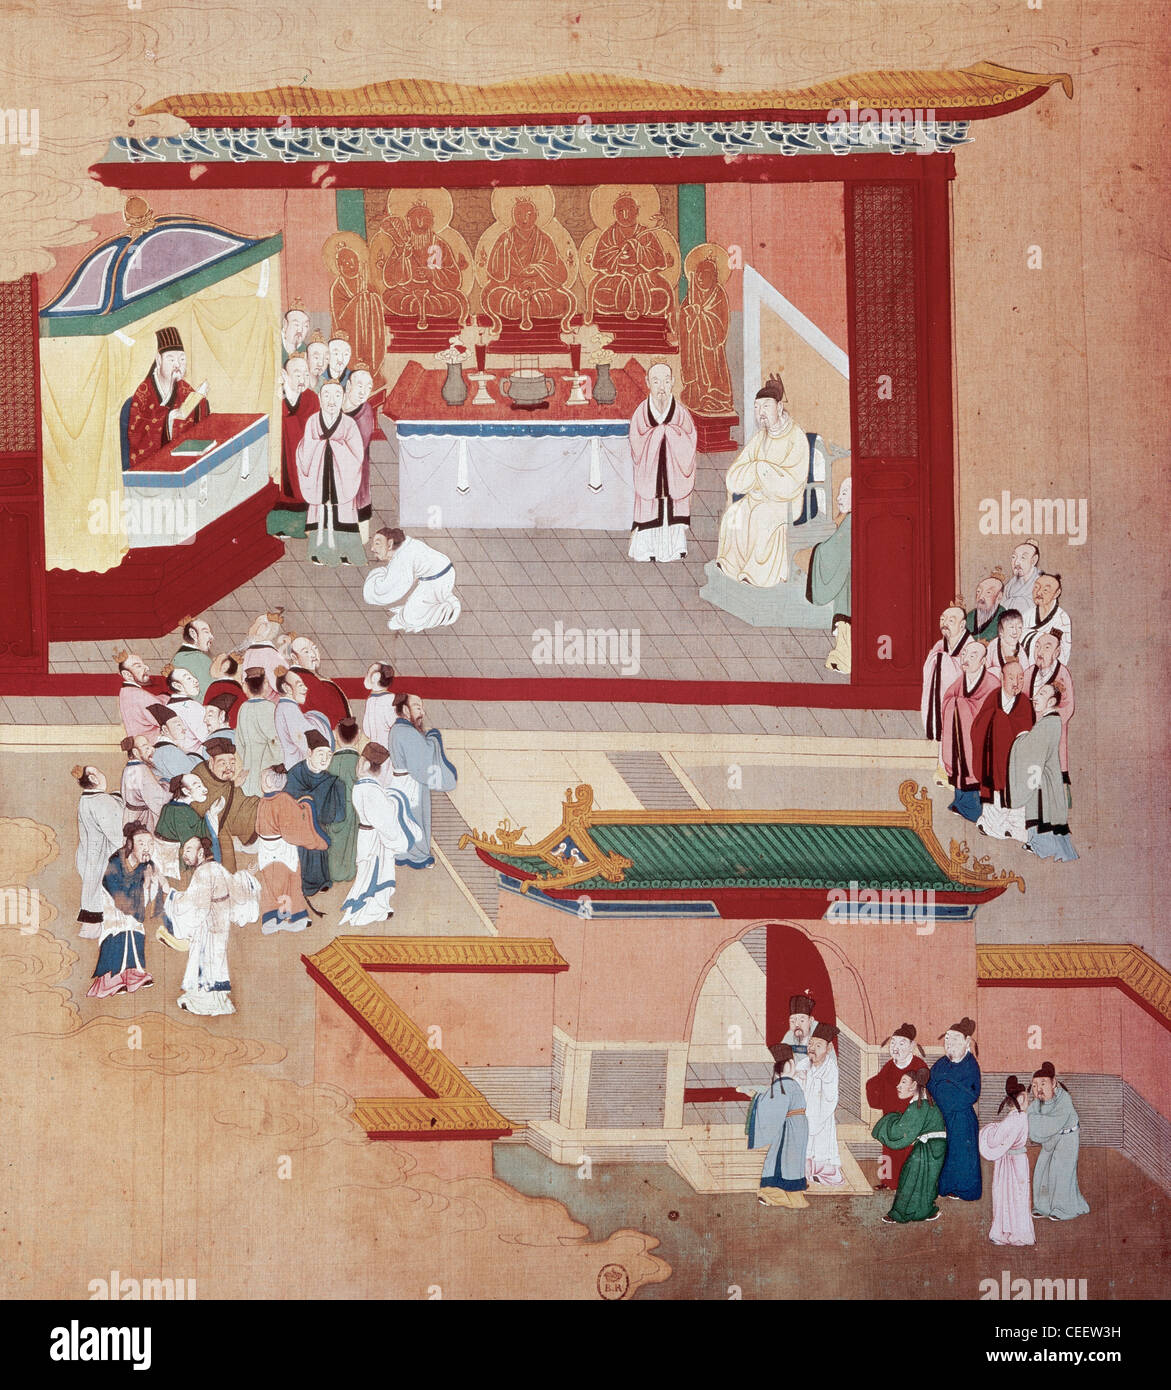 Emperor Huizong (1082-1135), reign (1100-1126). Song dynasty. The emperor with the Buddhist sect Tao-See. Miniature. - Stock Image